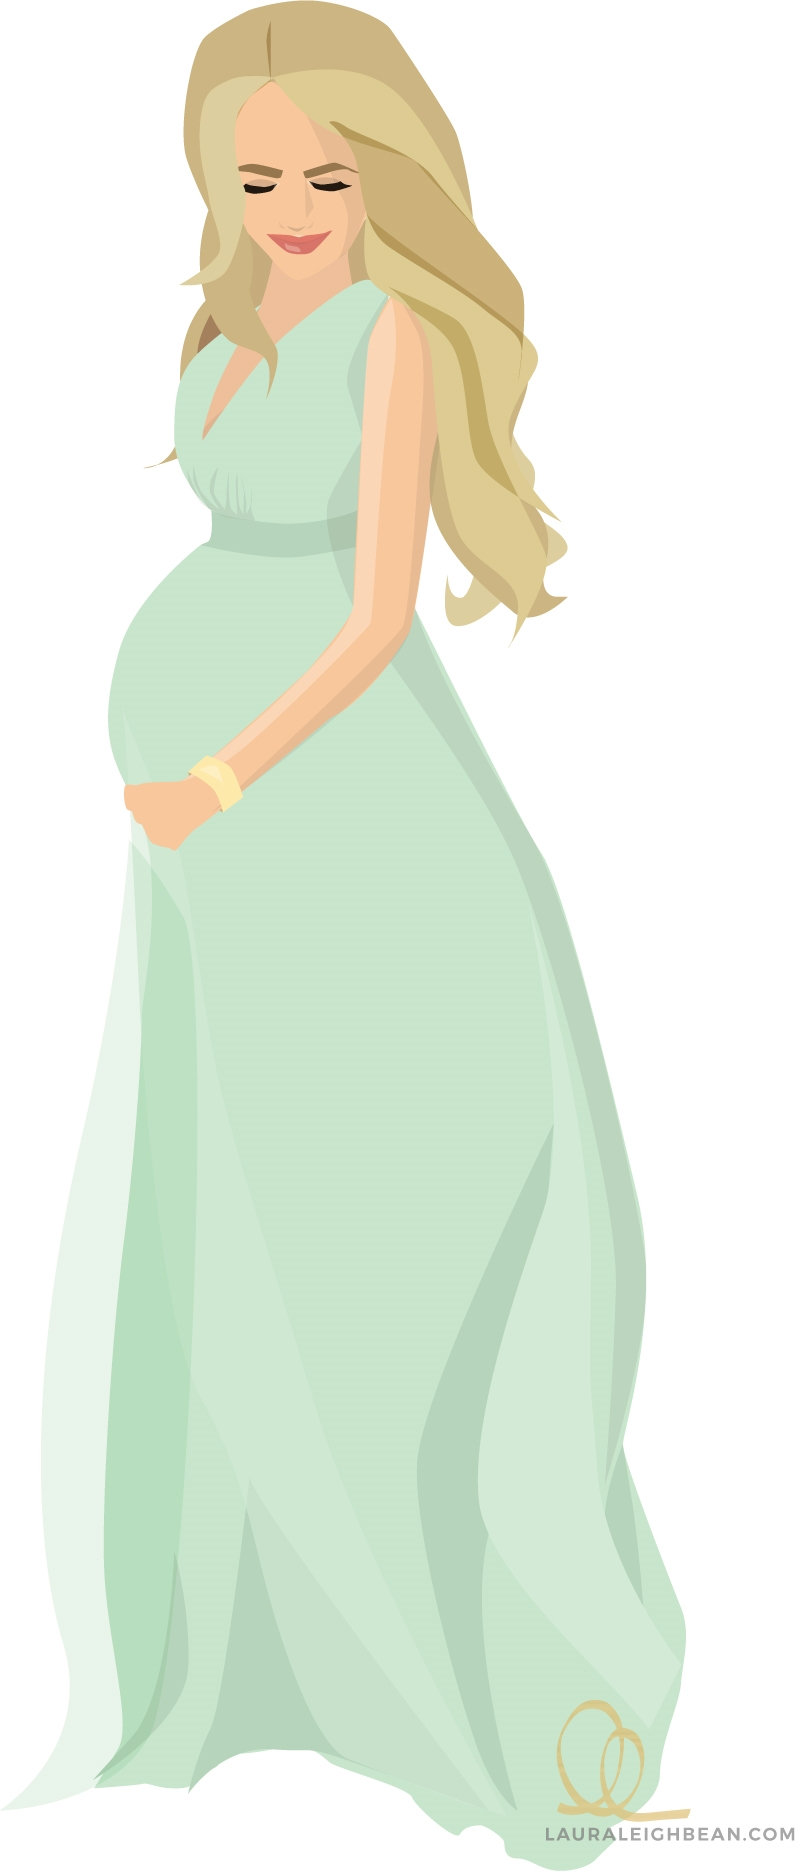 ll-creative-pregnancy-maternity-illustration.jpg